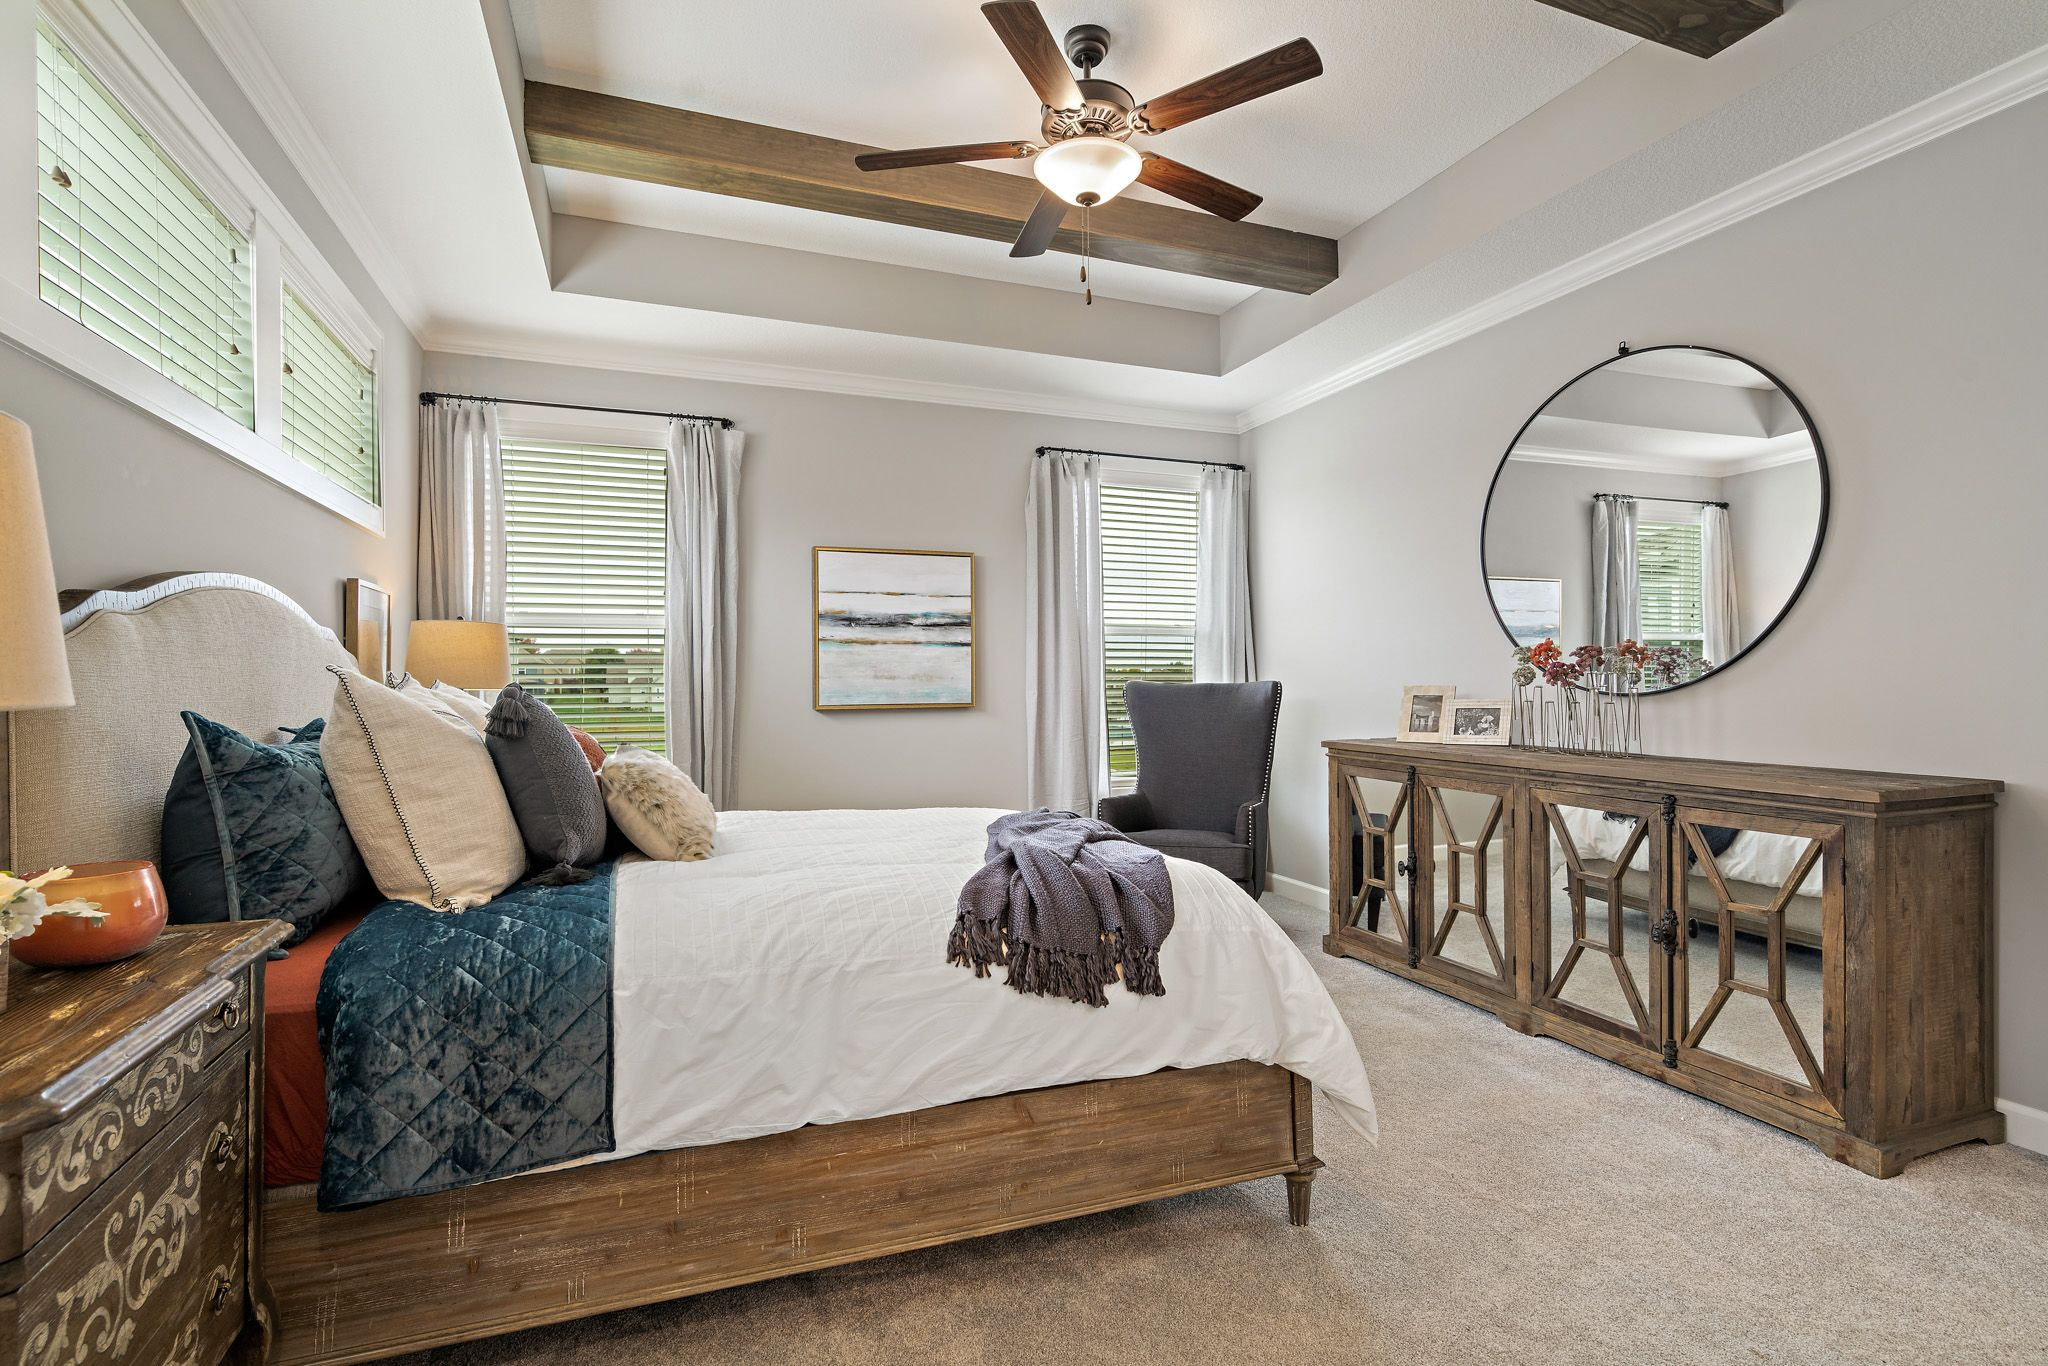 Bedroom featured in the Charlotte By Summit Homes in Kansas City, MO